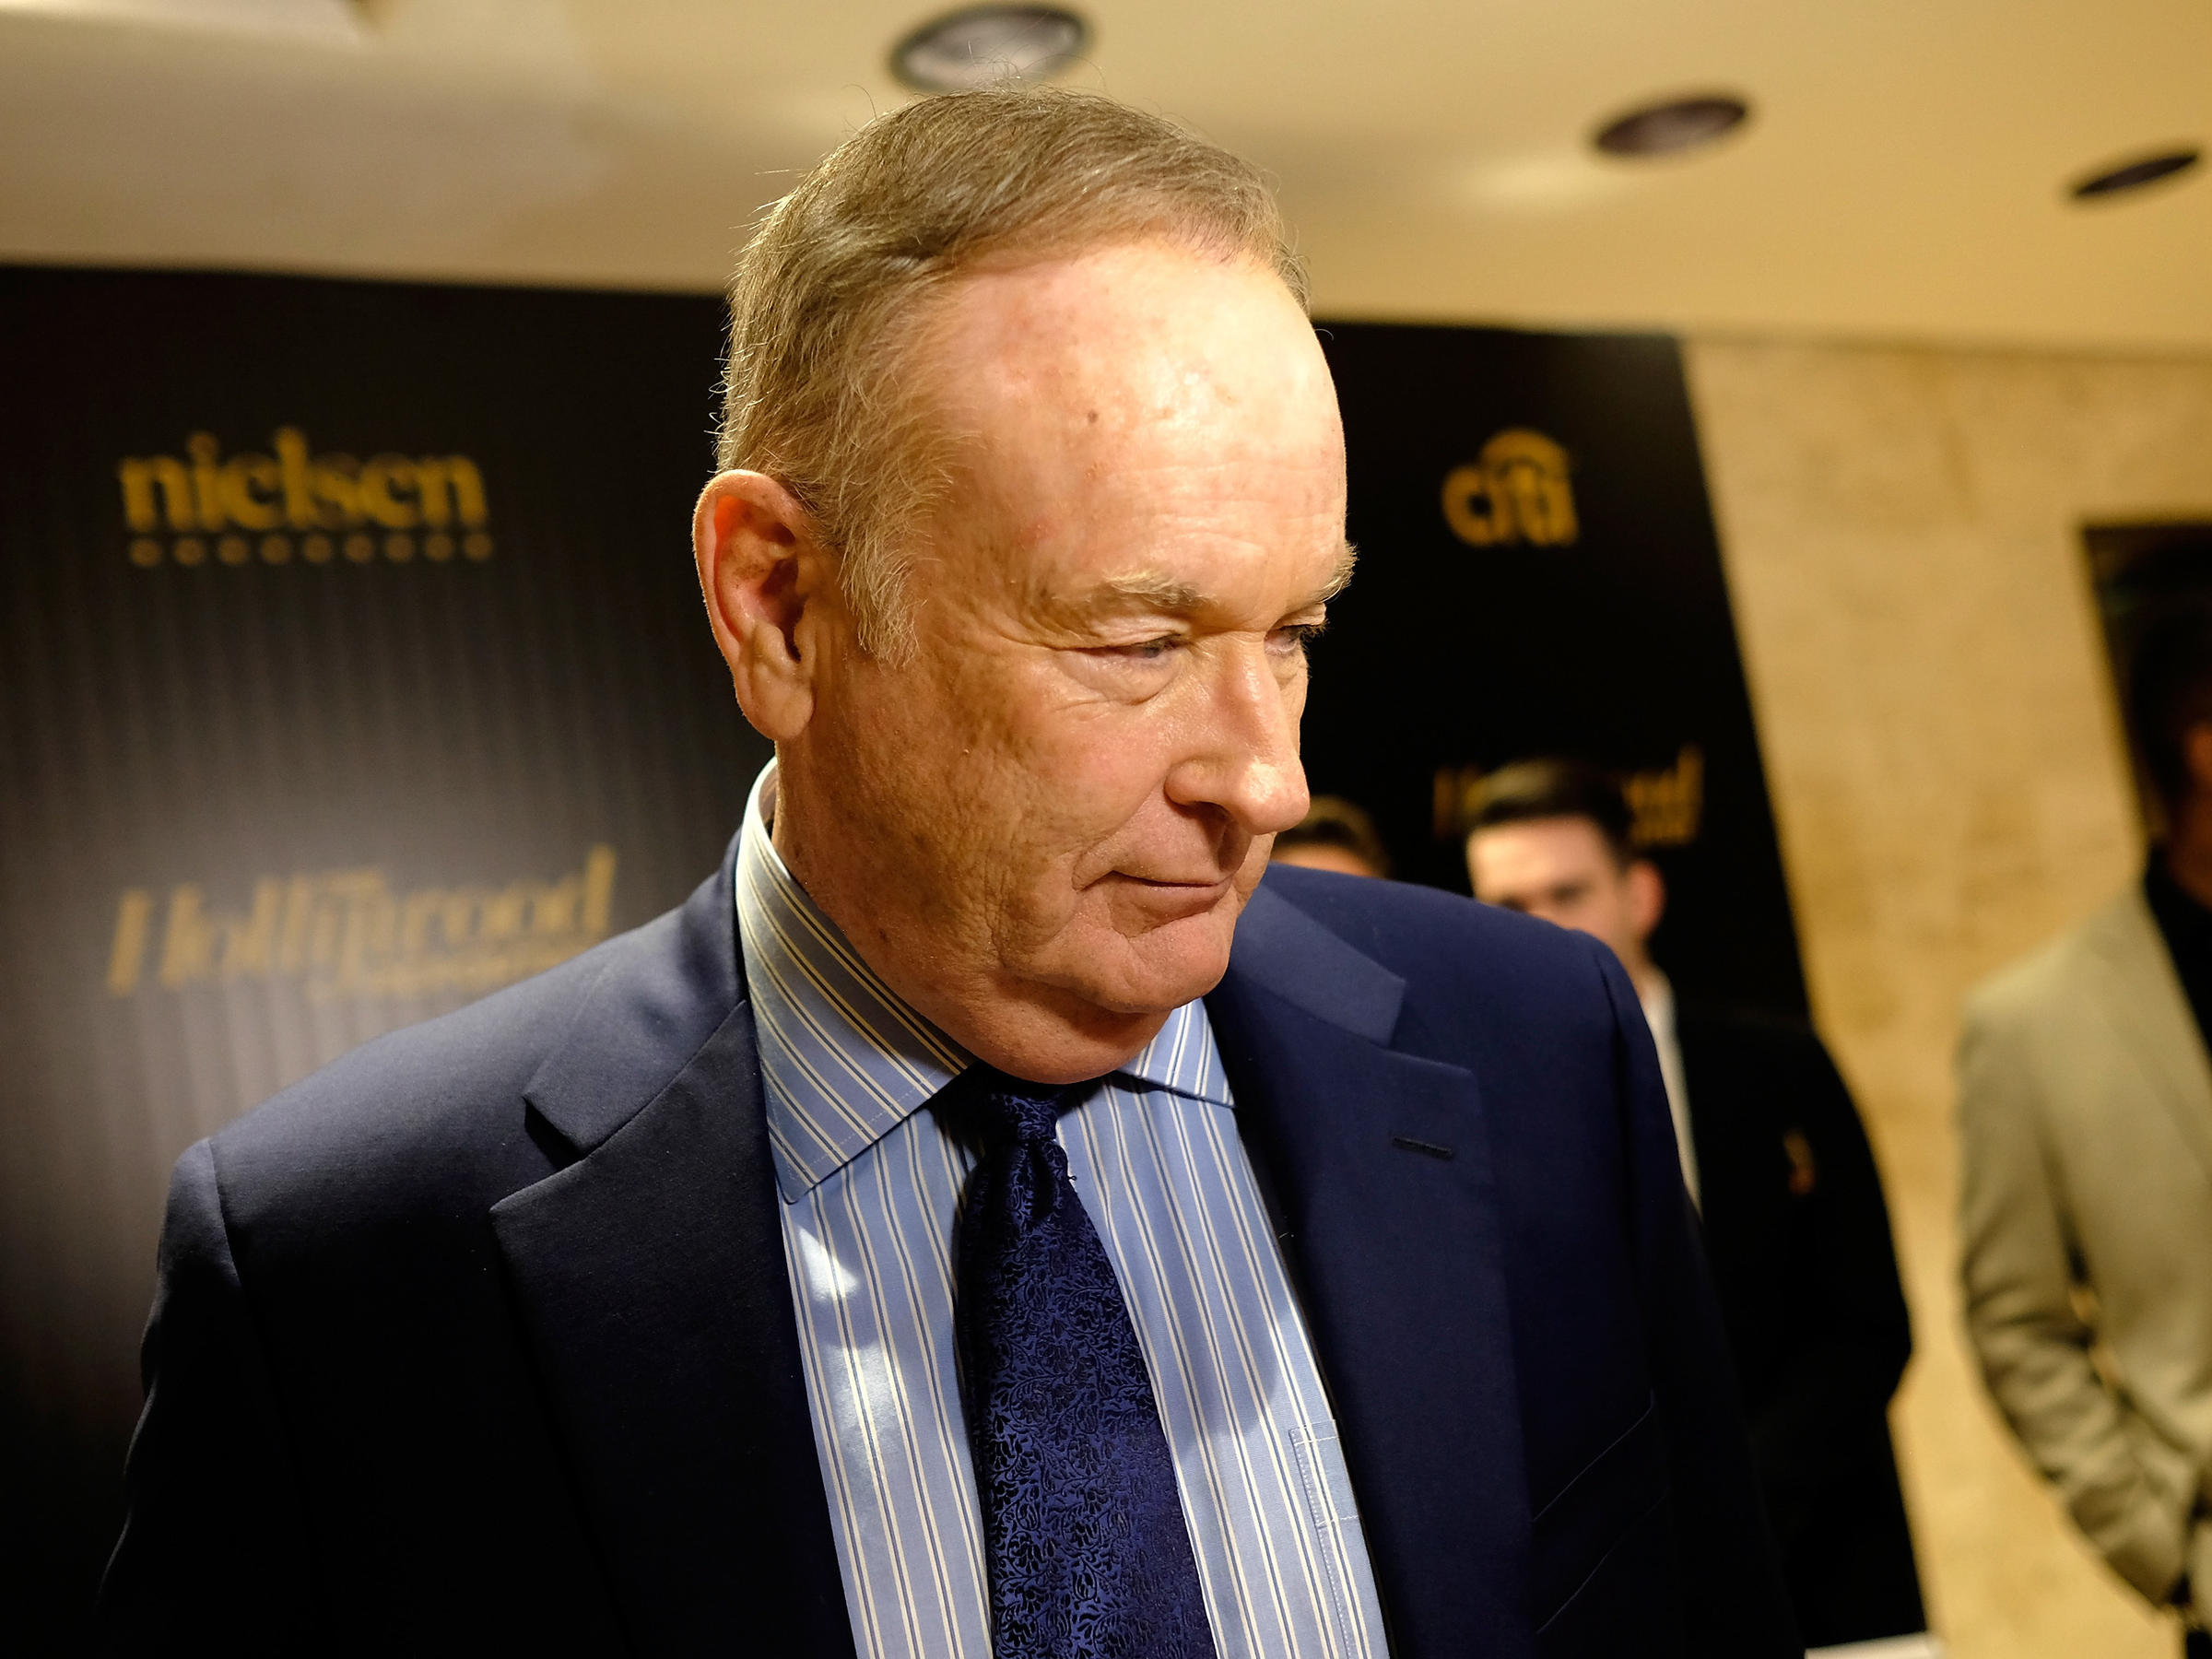 Bill O'Reilly Ousted From Fox News, Twitter Feasts